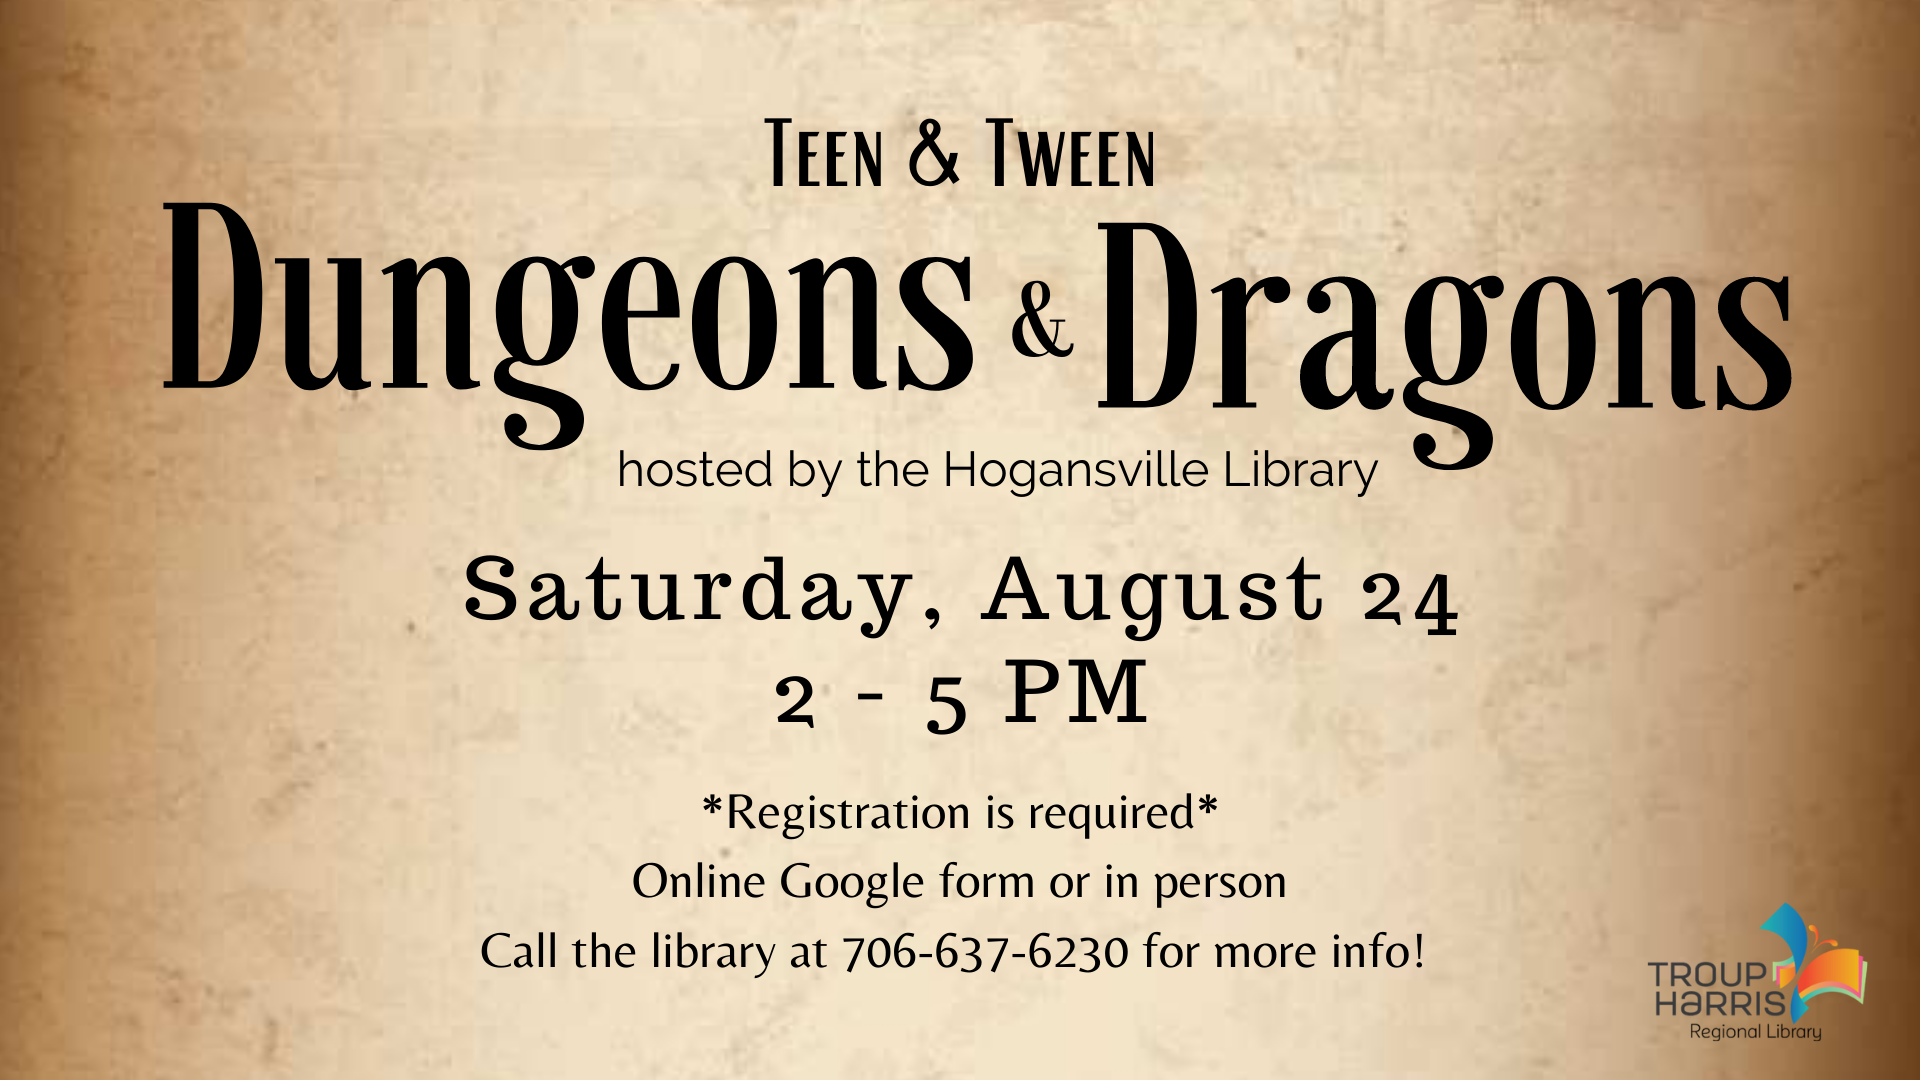 Teen Dungeons and Dragons at the Hogansville Public Library on Saturday, August 24 from 2 to 5 PM. Registration required.